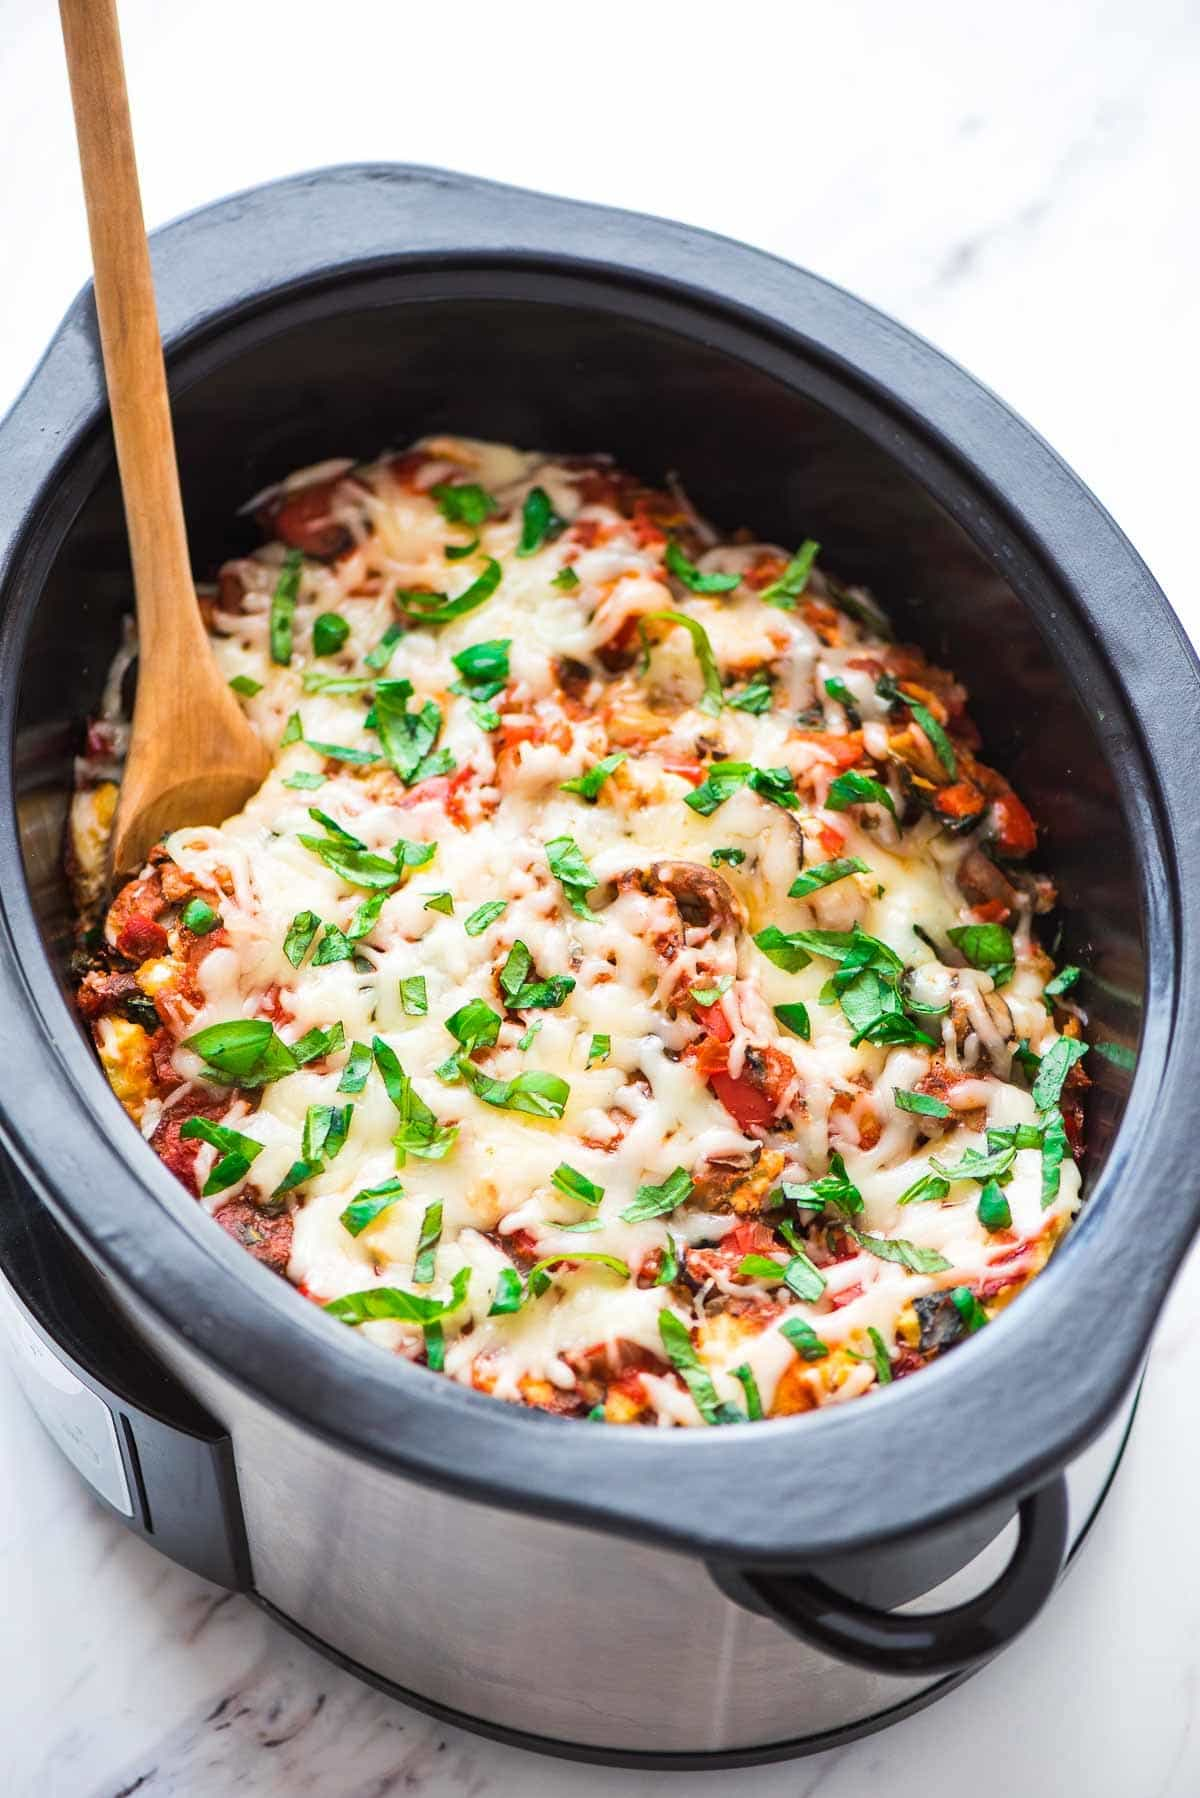 Crock Pot Pasta — all the cheesy comfort of traditional baked pasta recipes, but the slow cooker makes it EASY! Healthy vegetarian version made with whole wheat penne noodles. Recipe at wellplated.com | @wellplated